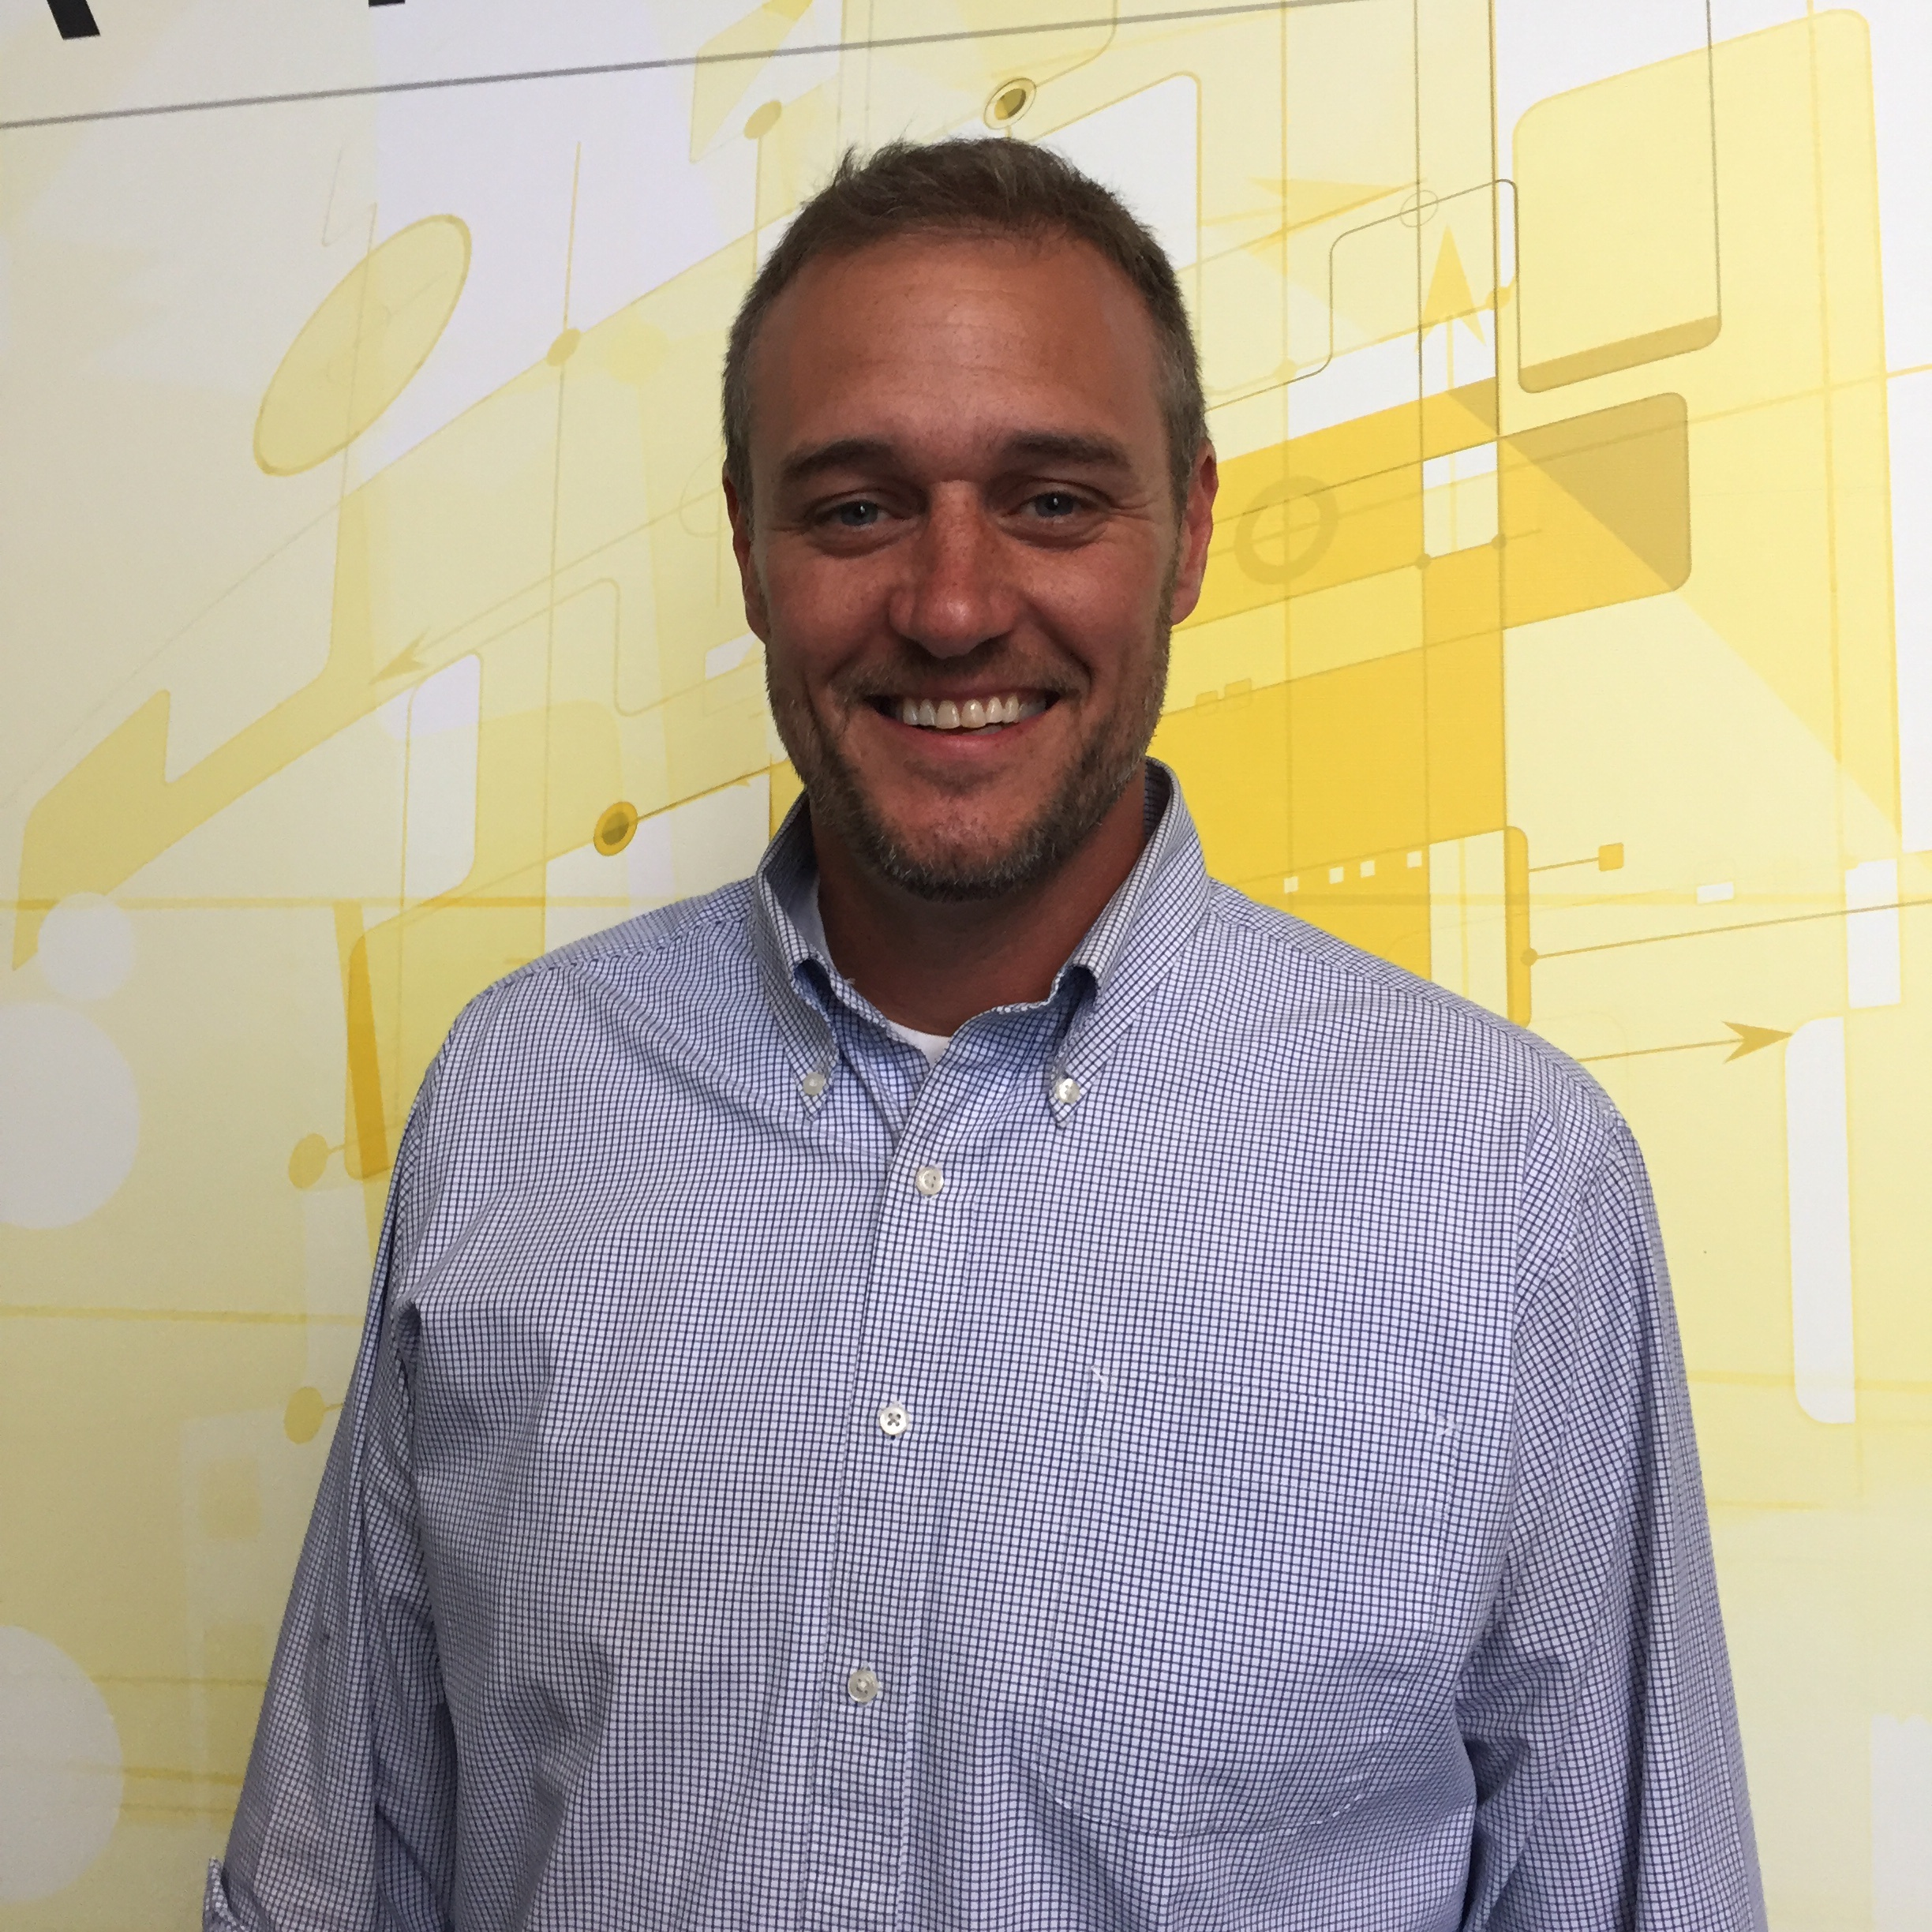 Marion Hires Mark Uetz as Commercial Regional Sales Manager for Minnesota Territory